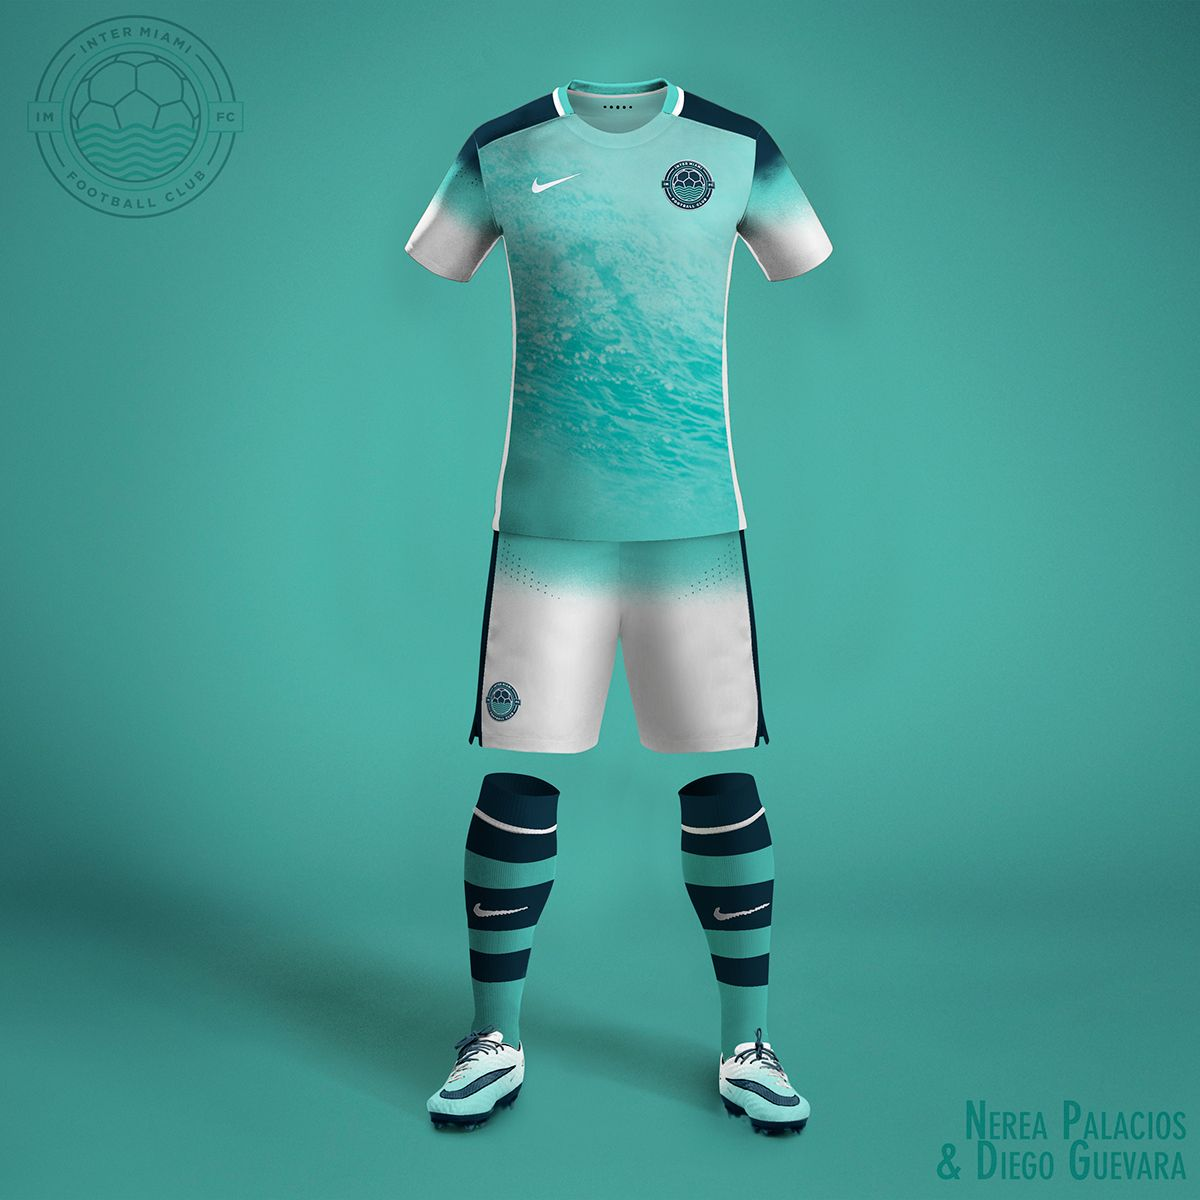 Mls Concepts On Behance Soccer Uniforms Design Basketball Uniforms Design Sports Jersey Design